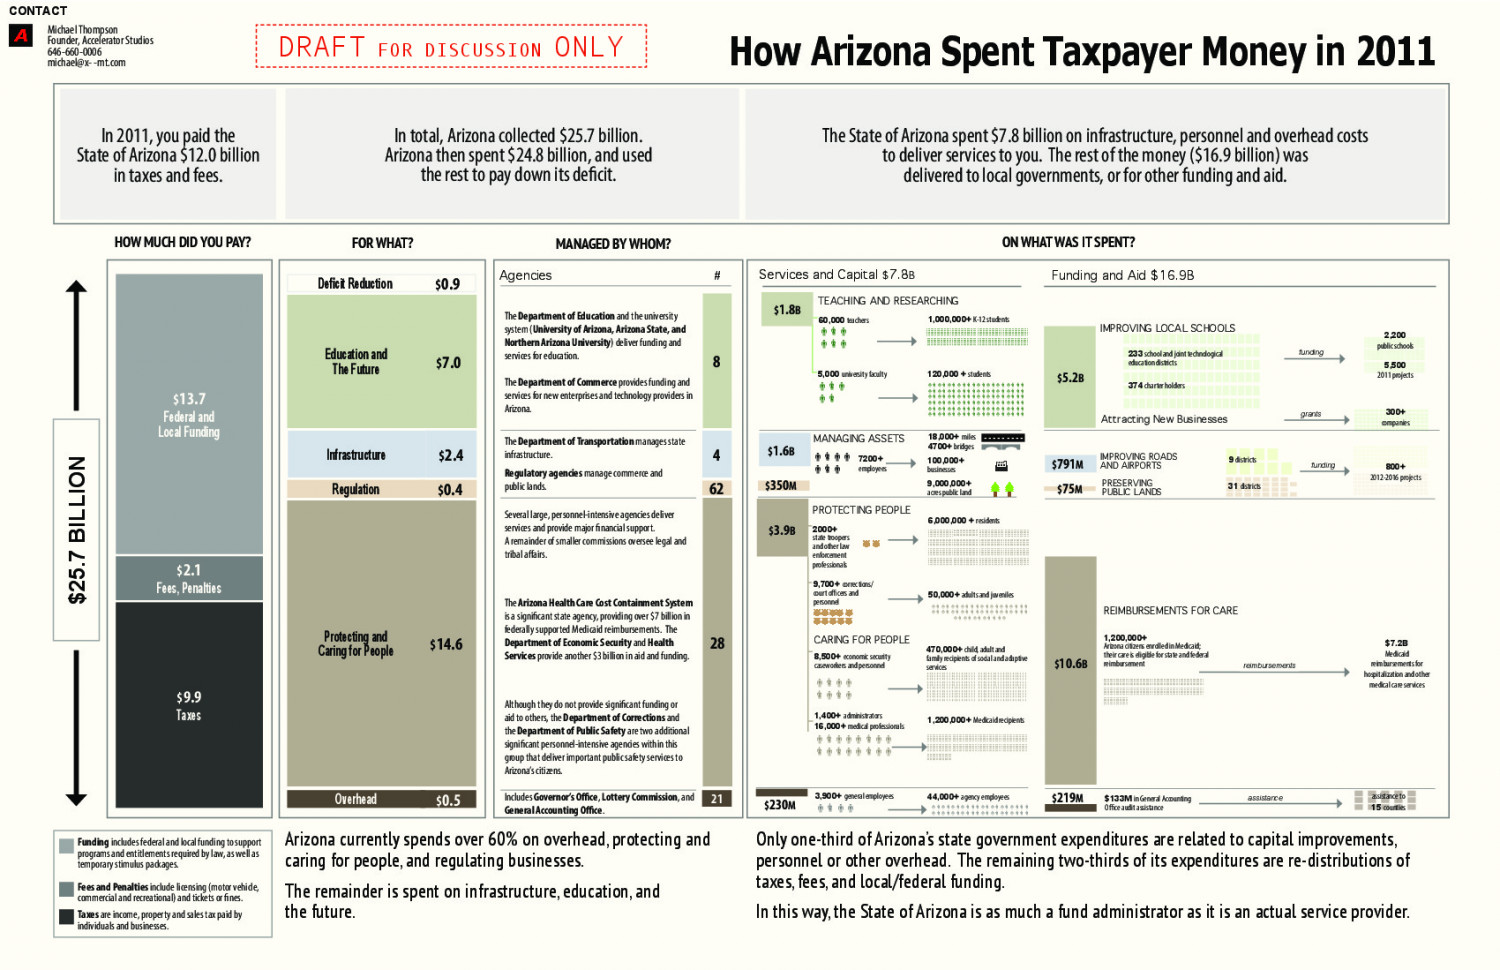 How Did Your State Spend Your Money? Infographic